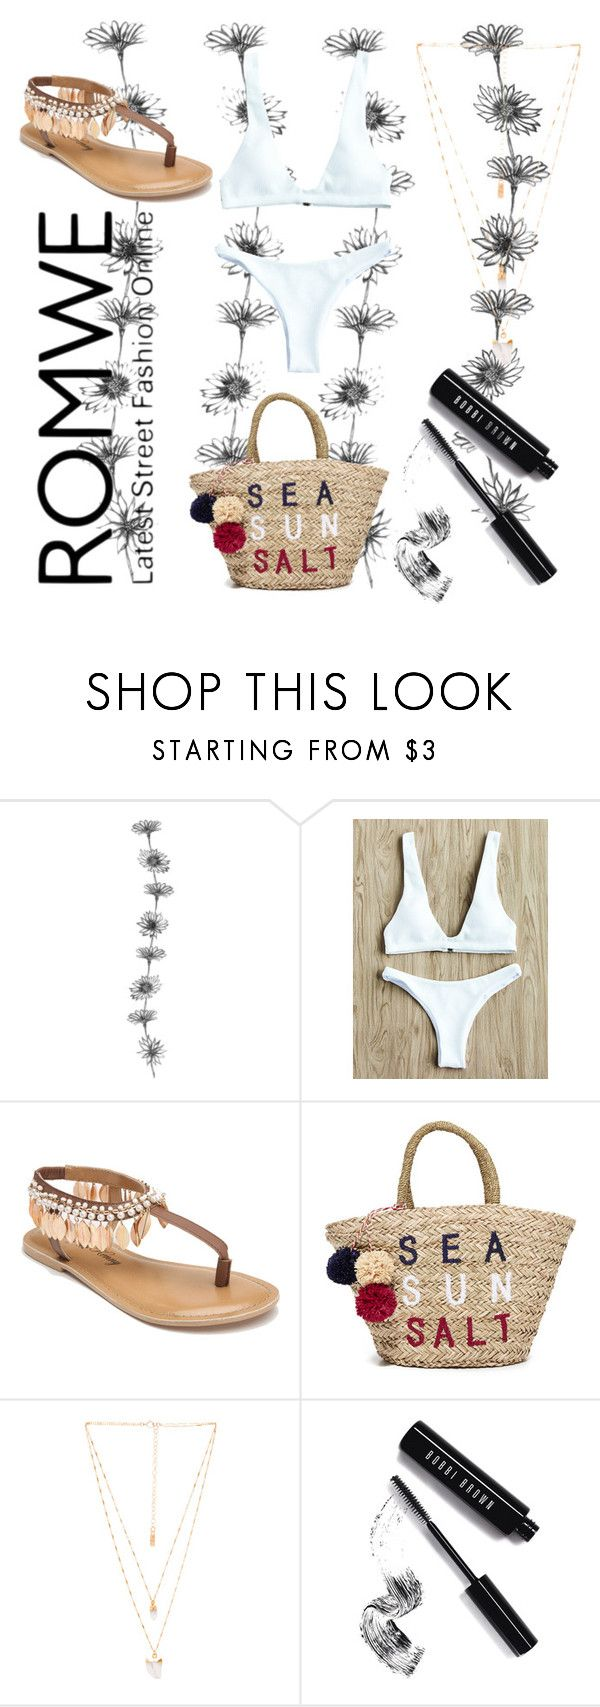 """ROMWE: Win $35 Coupon - Contest"" by jessicariddell1 ❤ liked on Polyvore featuring Penny Loves Kenny, Sundry, Natalie B and Bobbi Brown Cosmetics"